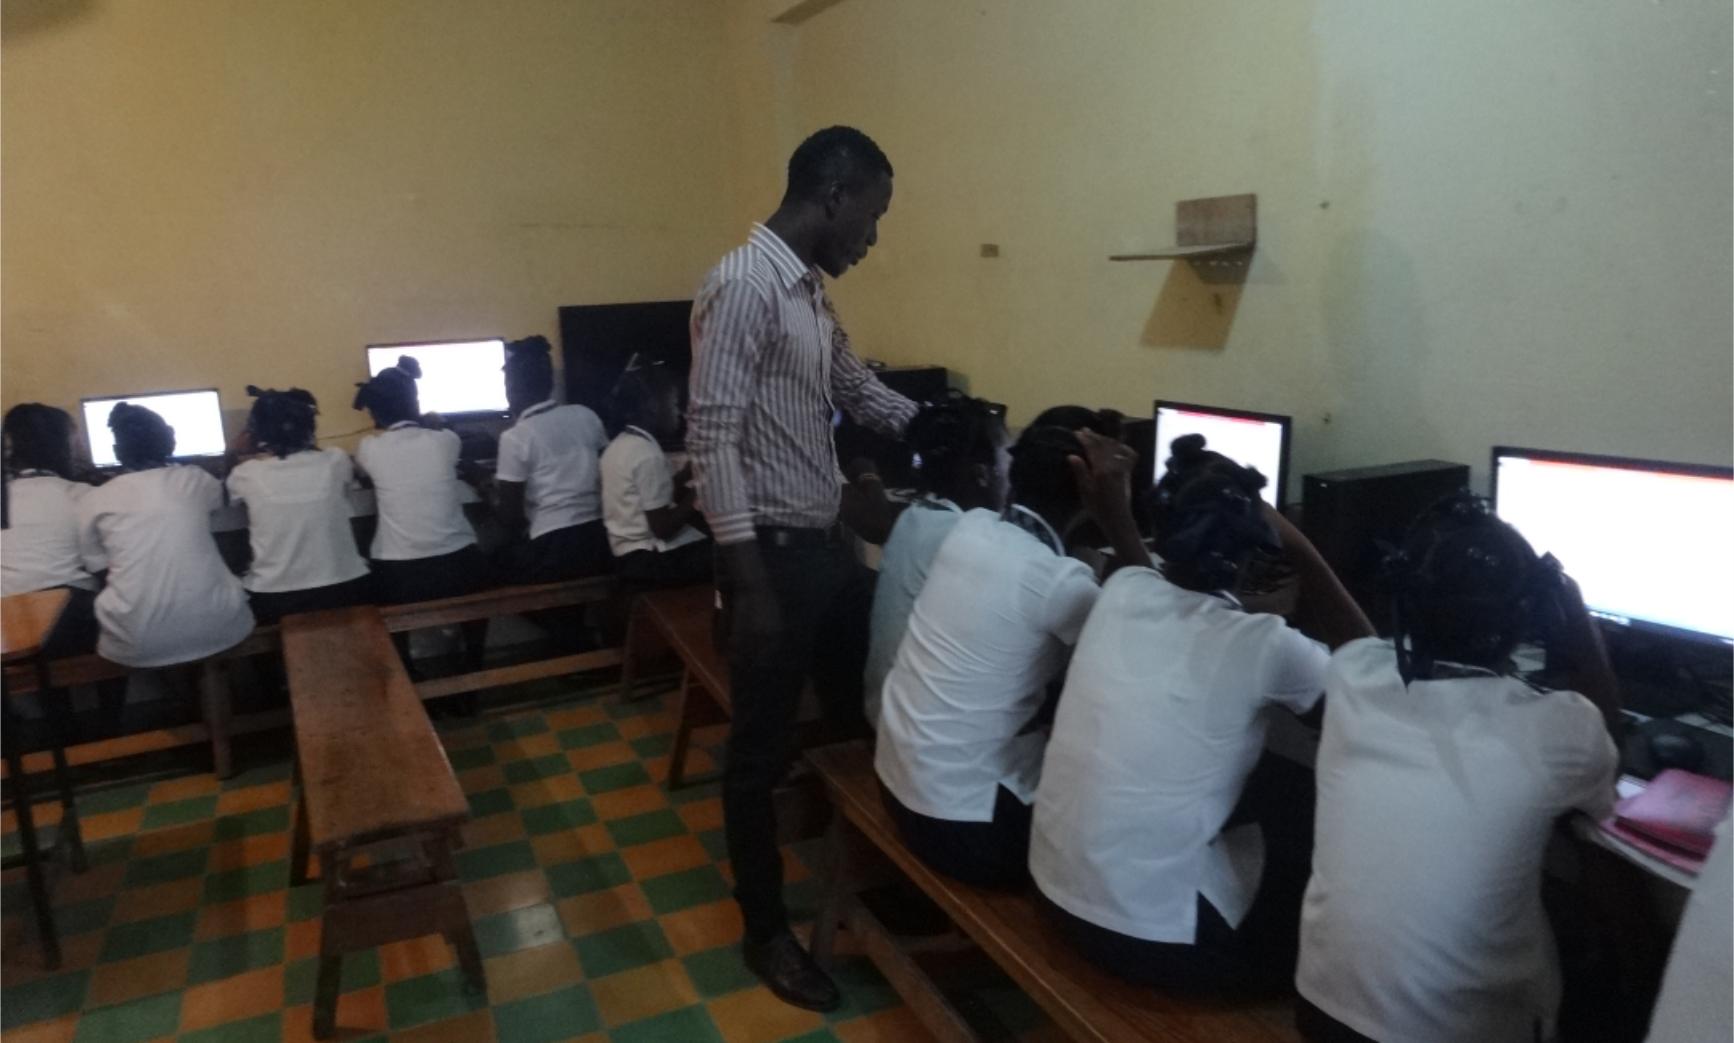 Jeff Benoit (LCS '14), head of the LCS Computer Department, teaches students in the brand new computer lab donated by the Michael and Susan Dell Family Foundation.